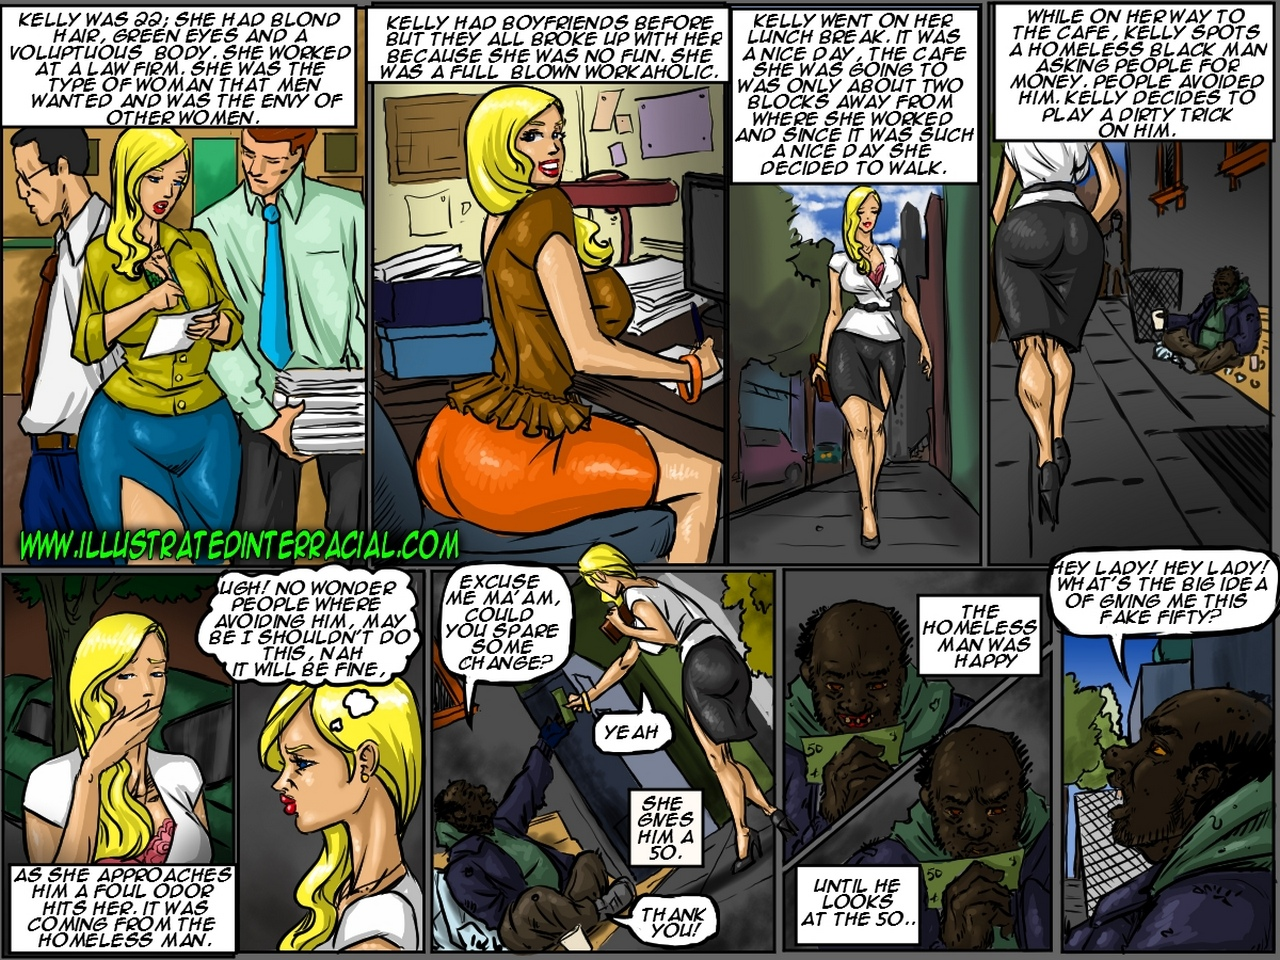 The-Homeless-Man-s-New-Wife 2 free sex comic